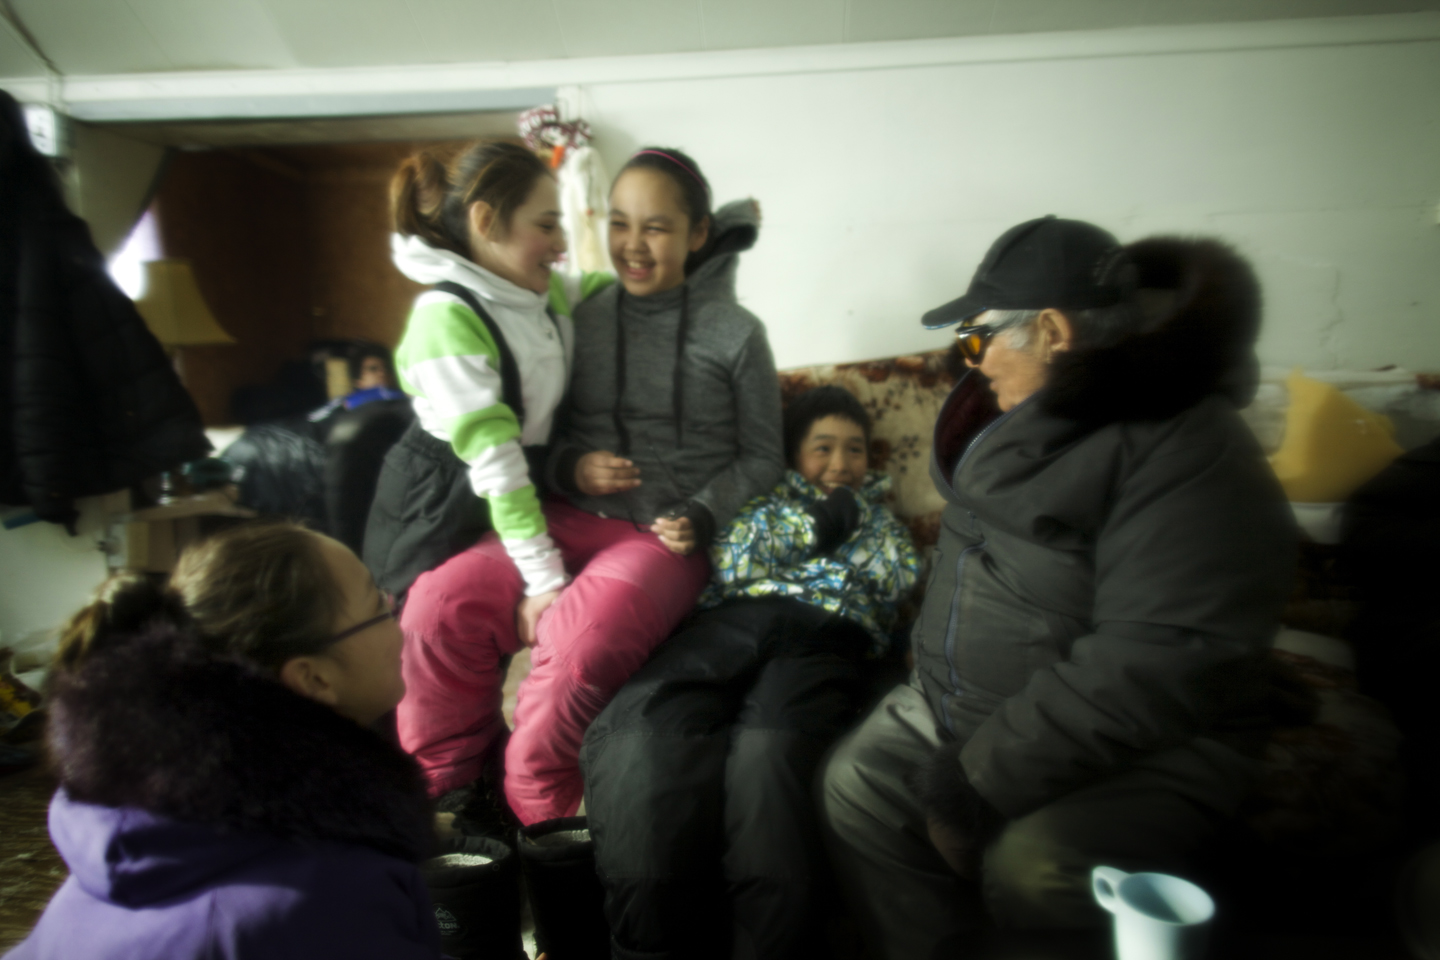 Fun in the cabin on the land trip: elder Kov told stories, the youth took photos